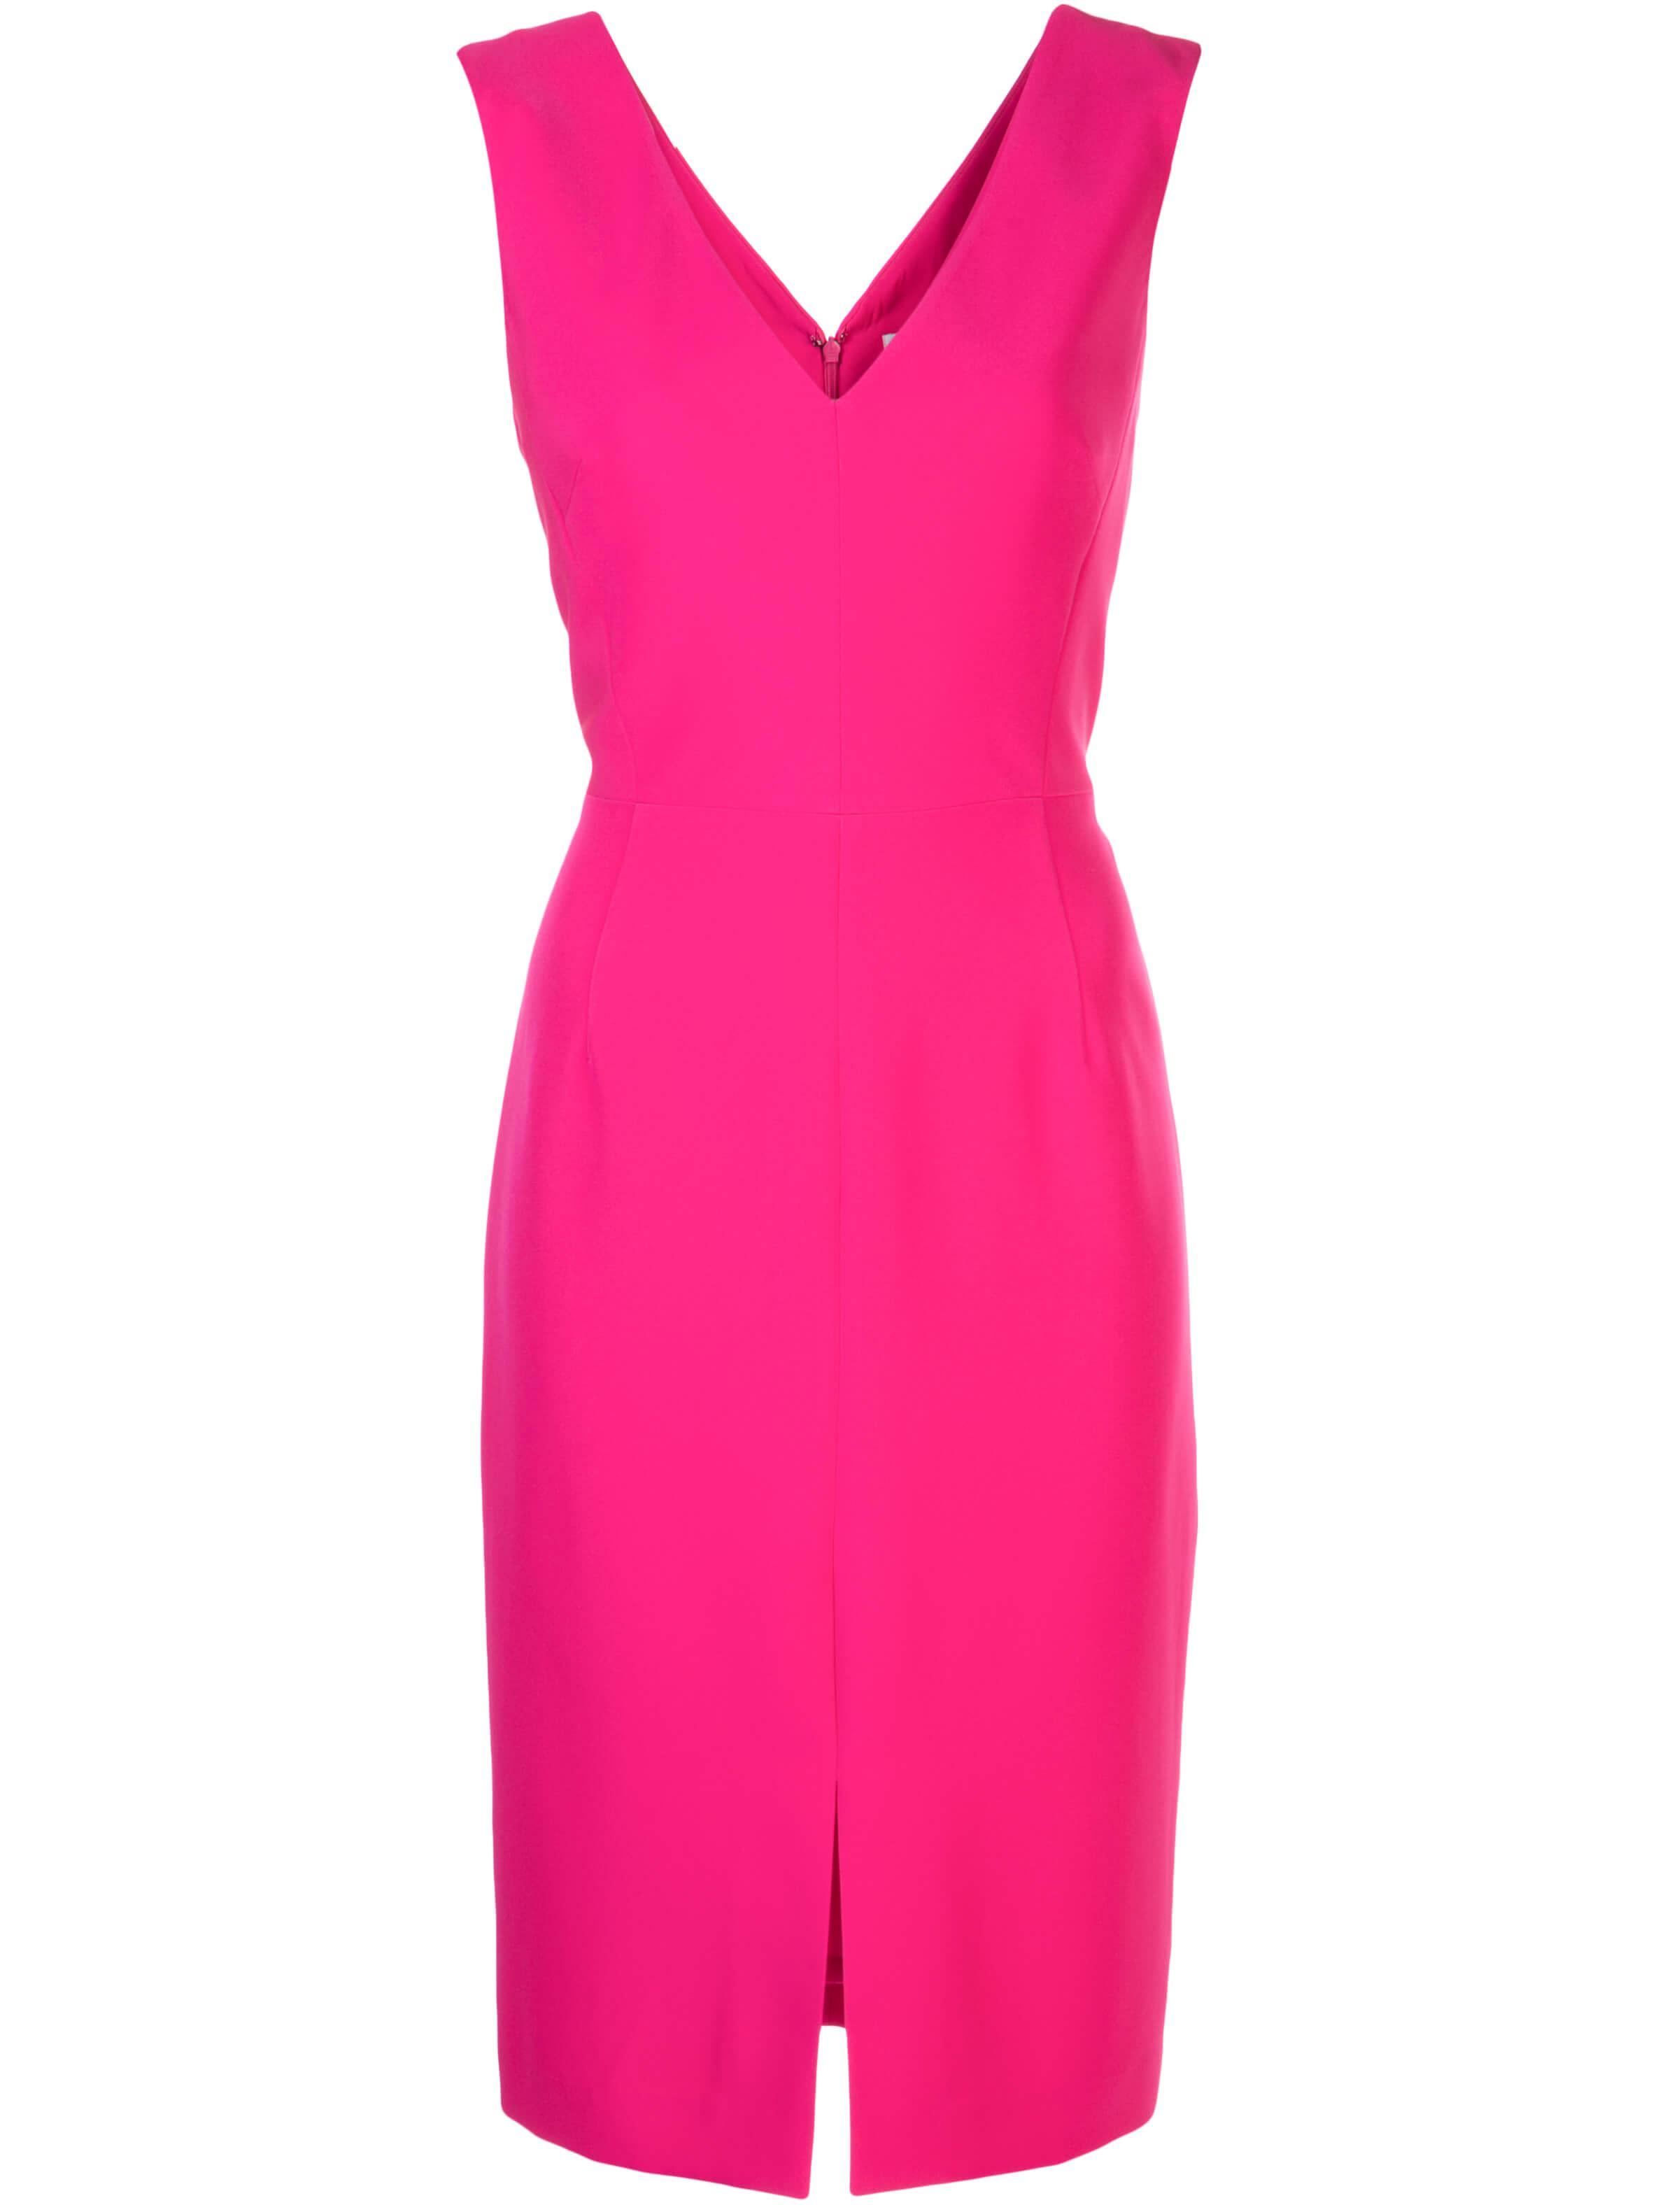 Cady Kristianna Sheath Dress